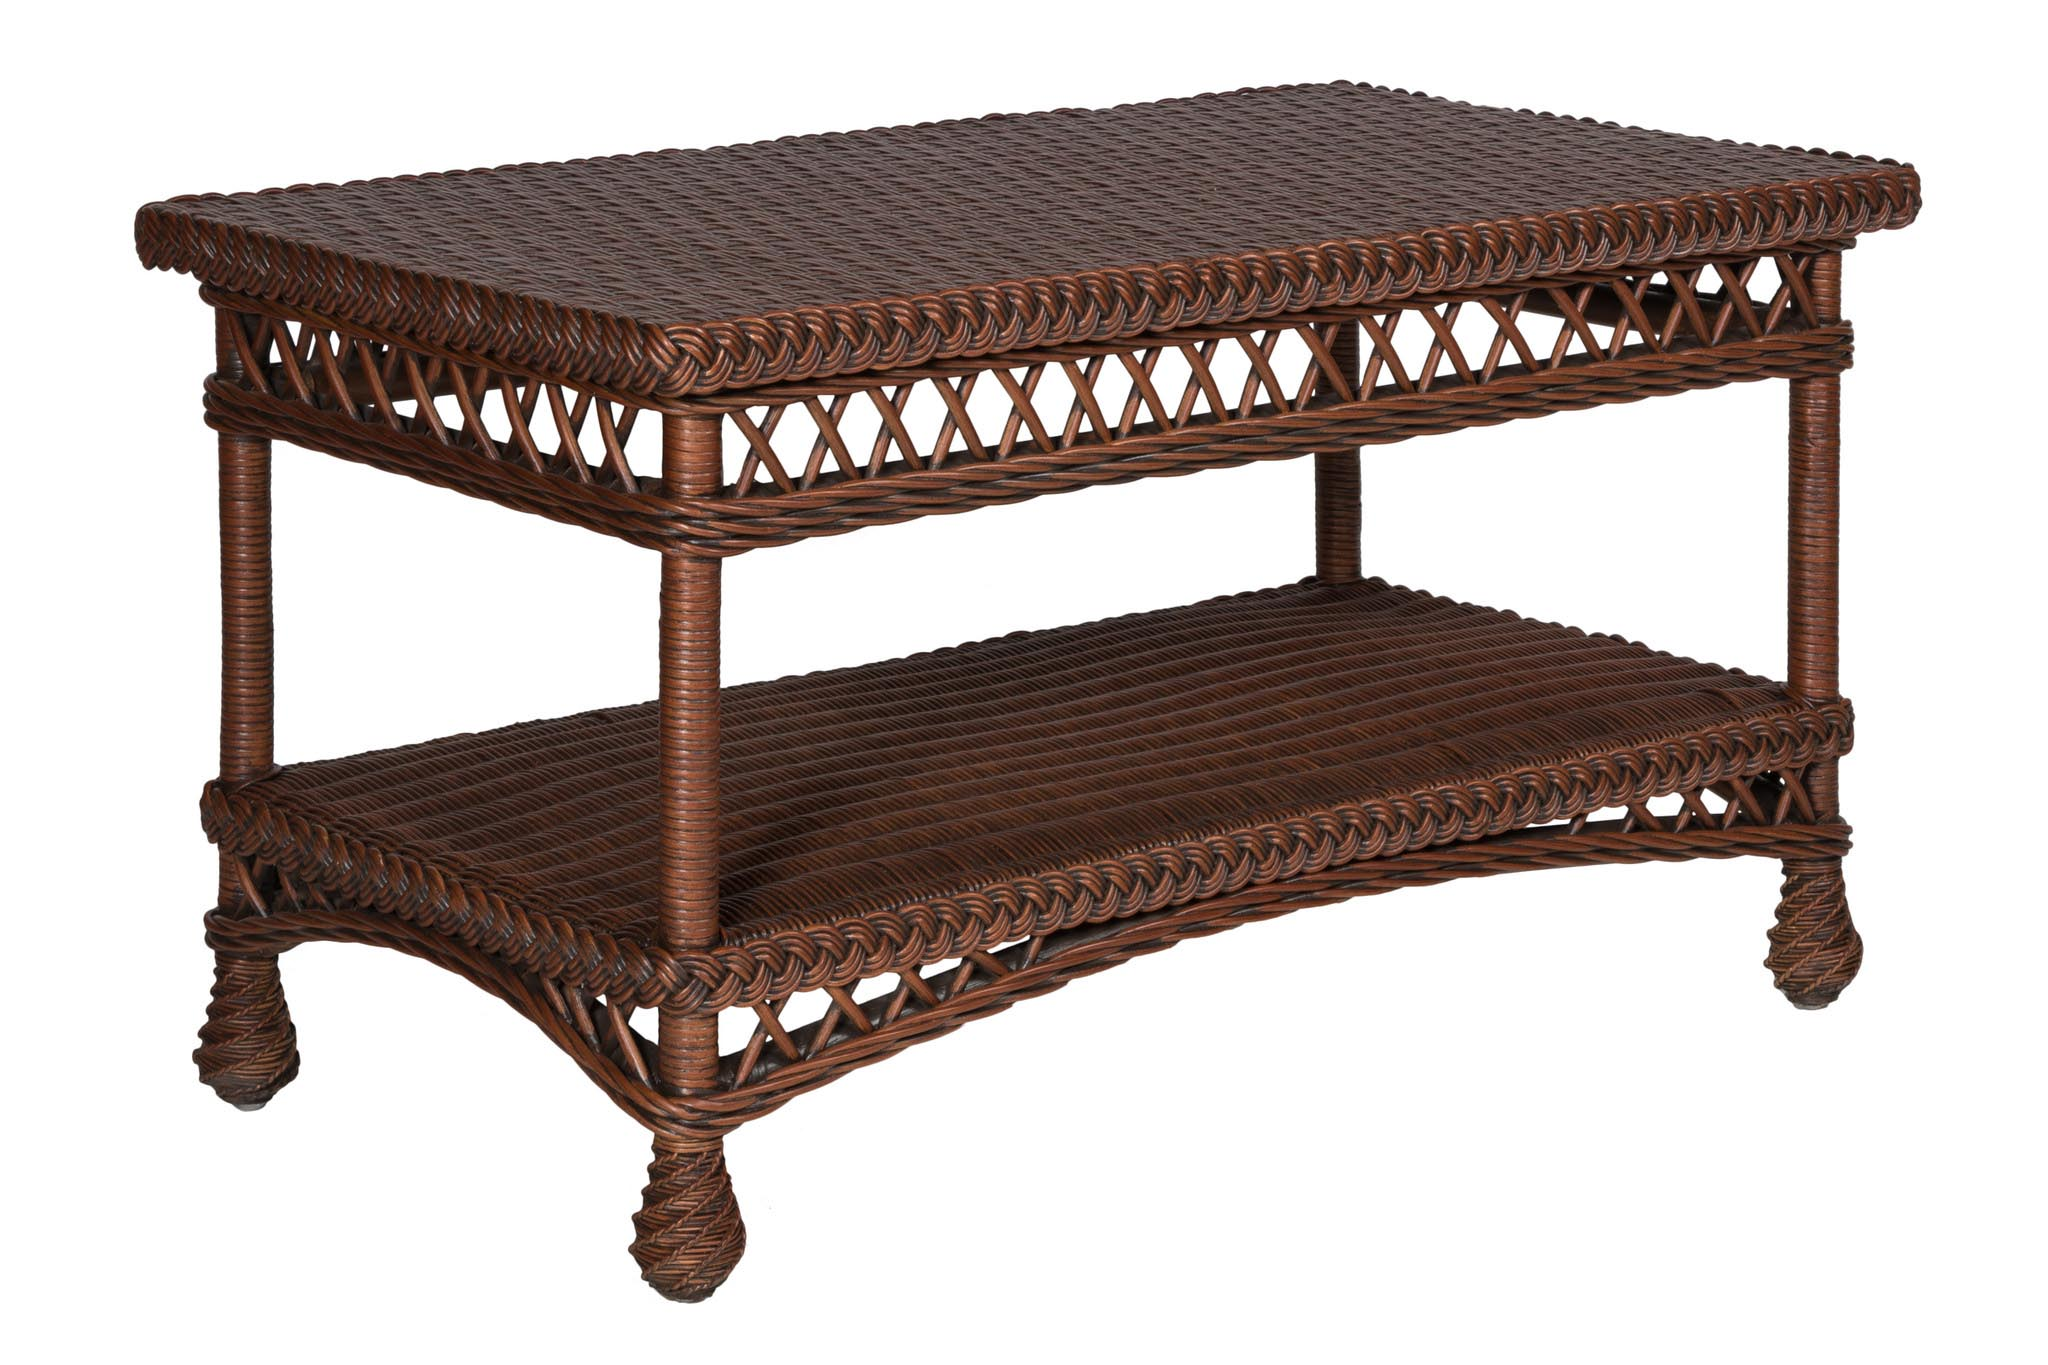 Bar Harbor or Rockport Wicker Coffee Table American Country